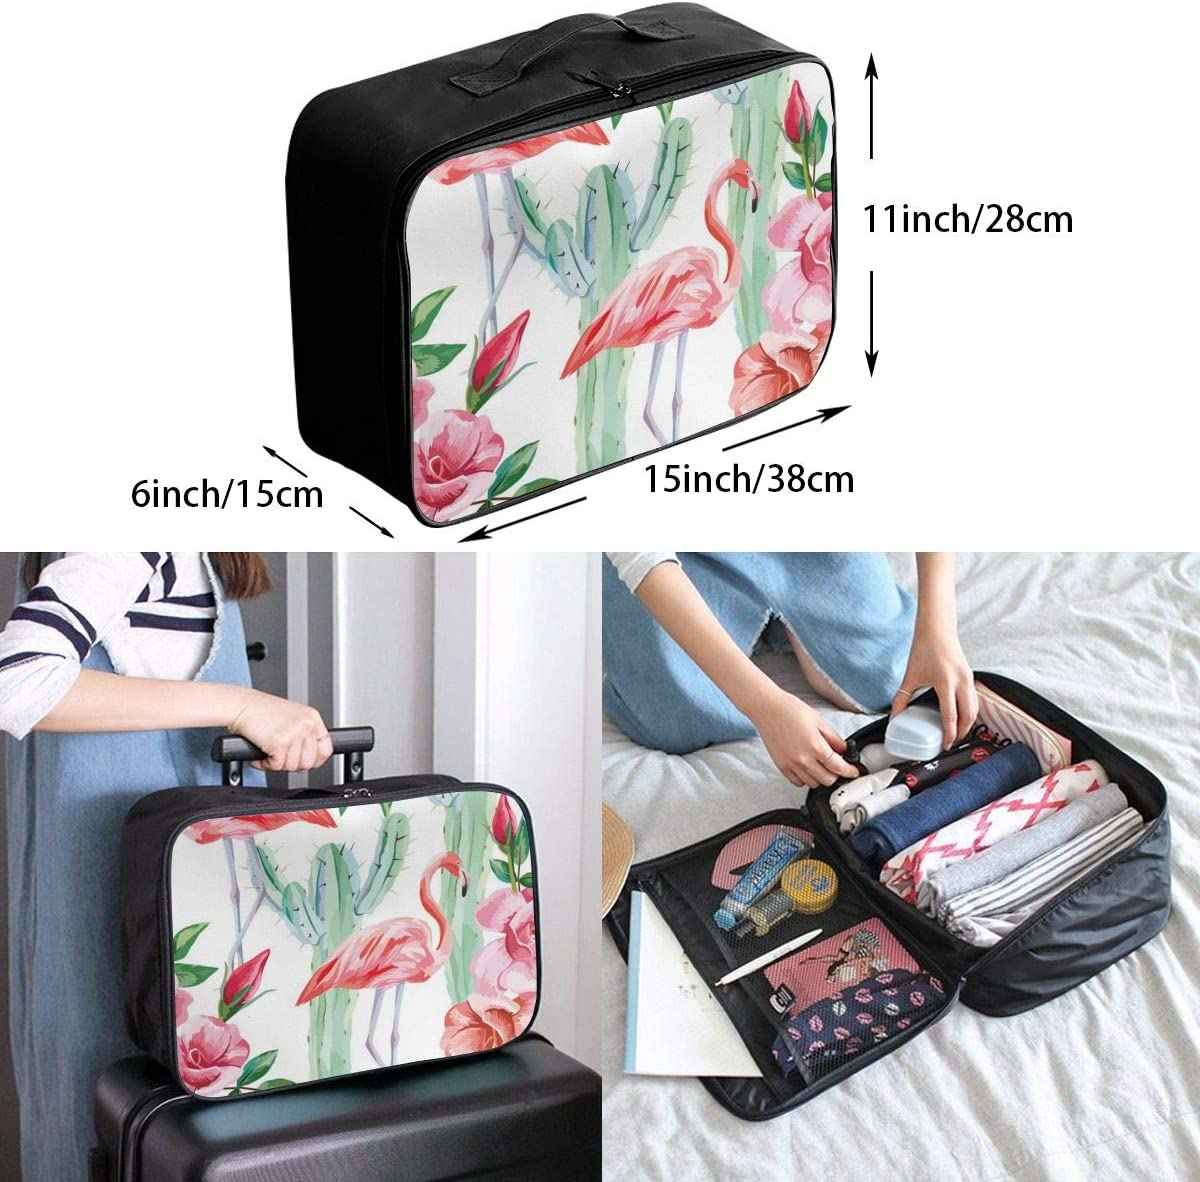 Yunshm Cartoon Pattern Cactus Potted Personalized Trolley Handbag Waterproof Unisex Large Capacity For Business Travel Storage